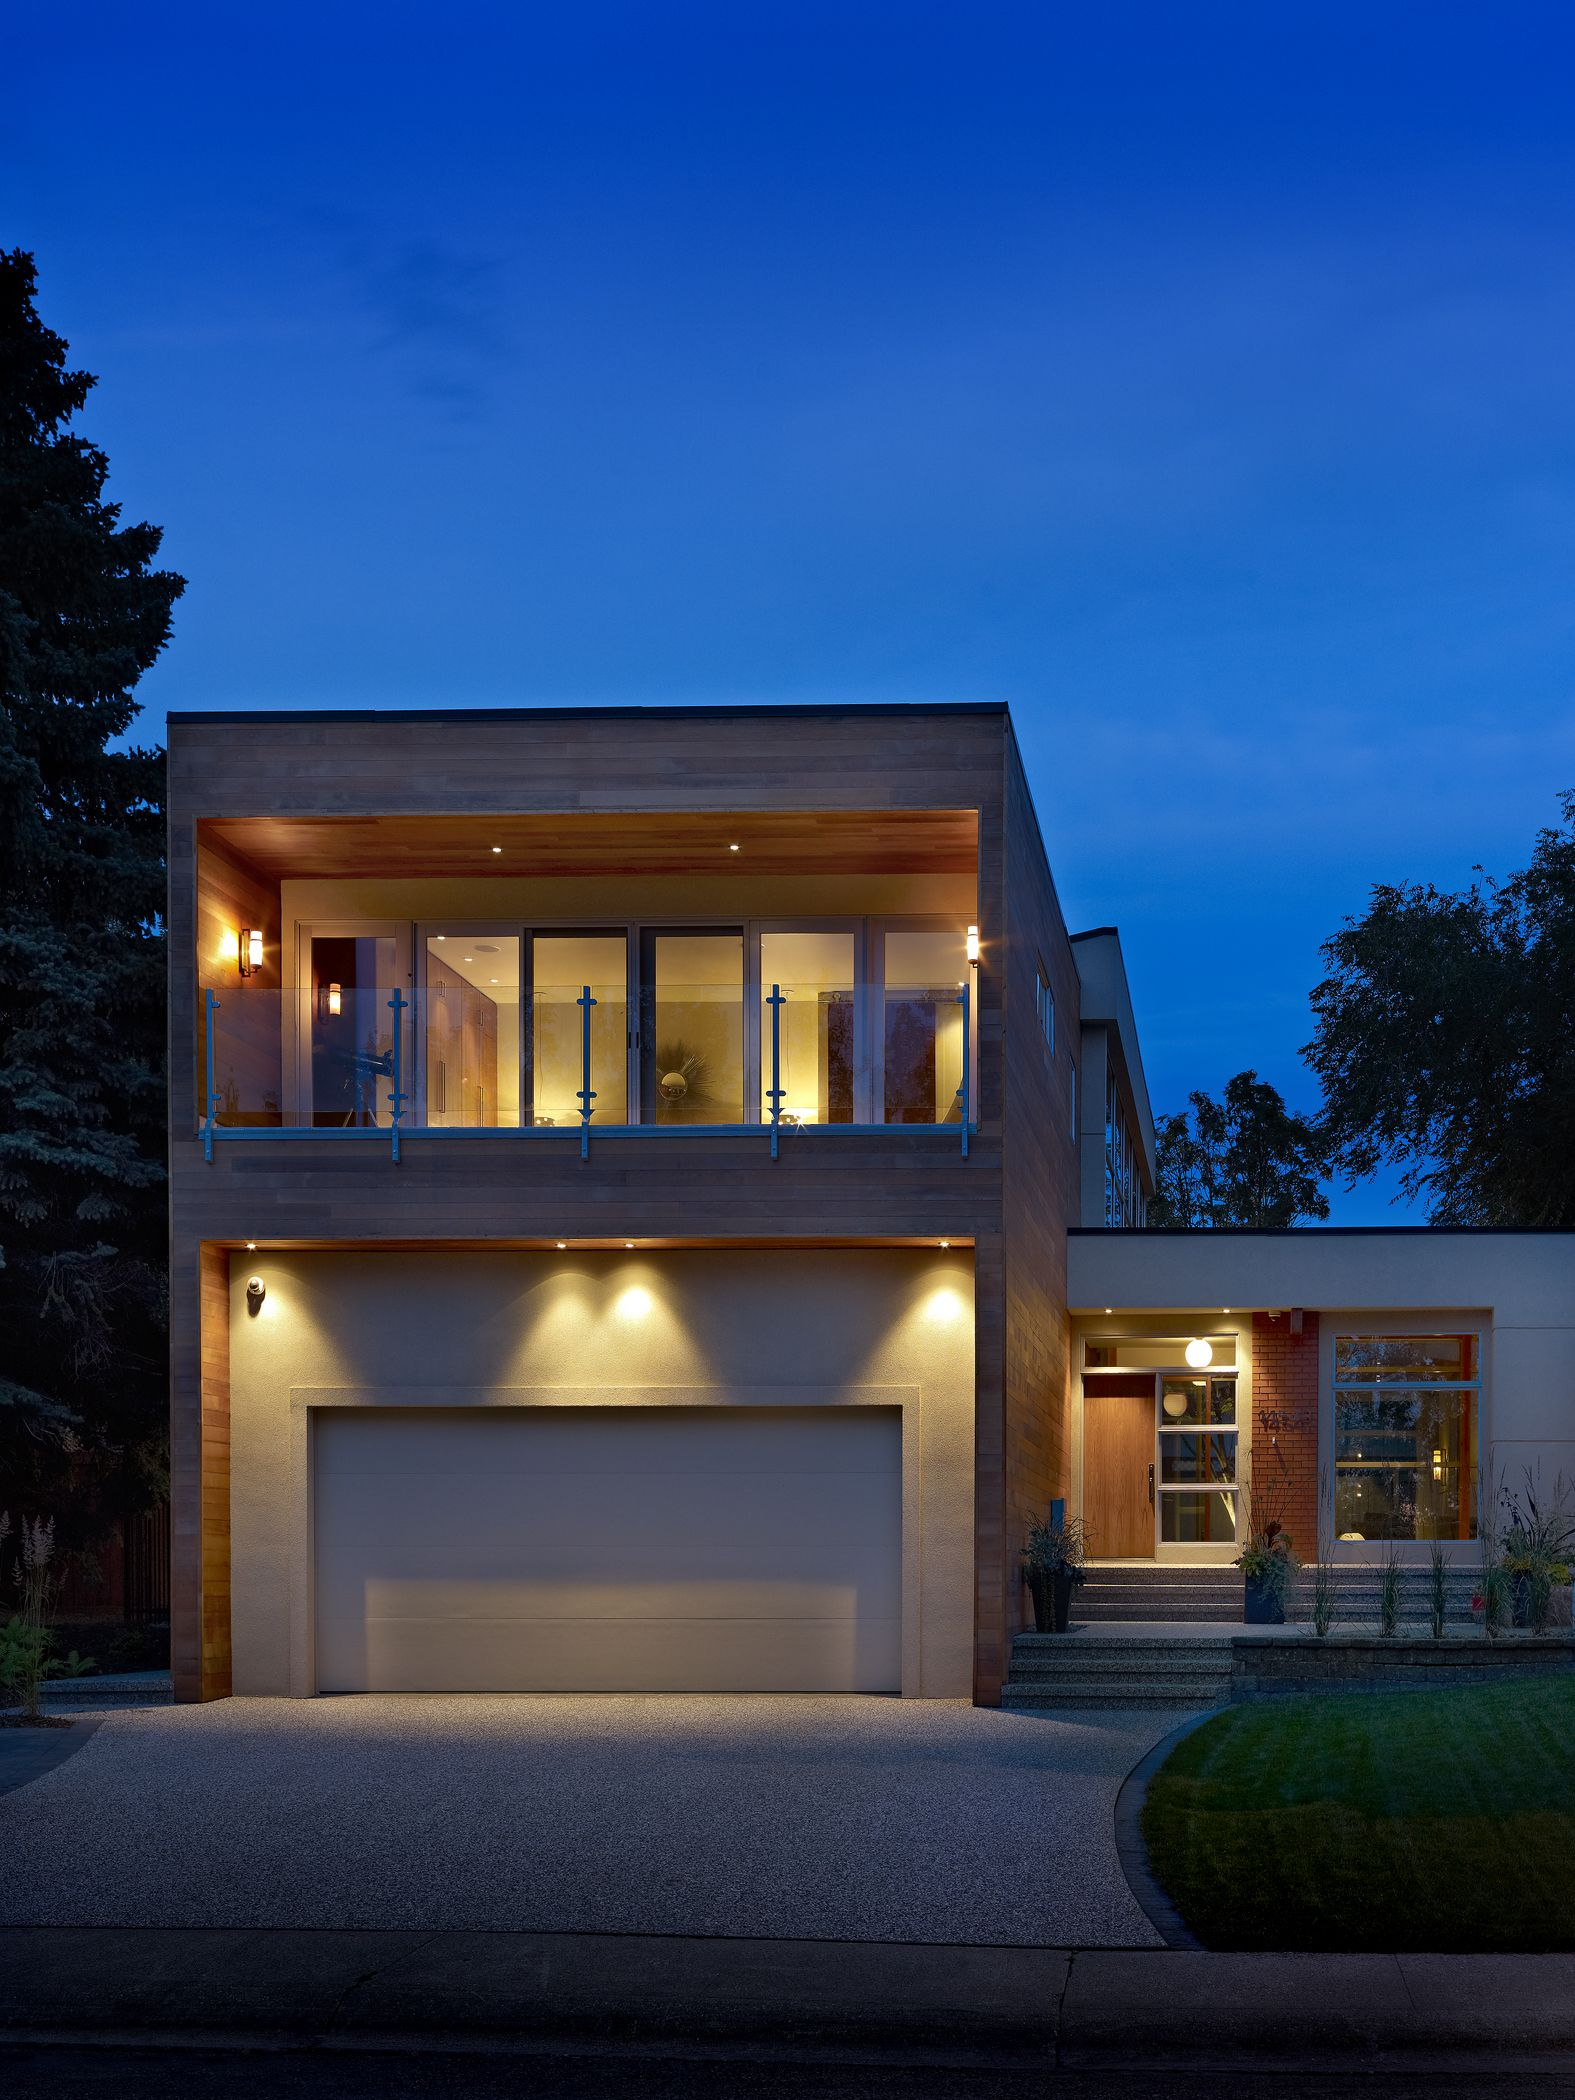 Home exterior built by birkholz homes in edmonton outdoor lighting home exterior built by birkholz homes in edmonton outdoor lighting enhances this custom home workwithnaturefo